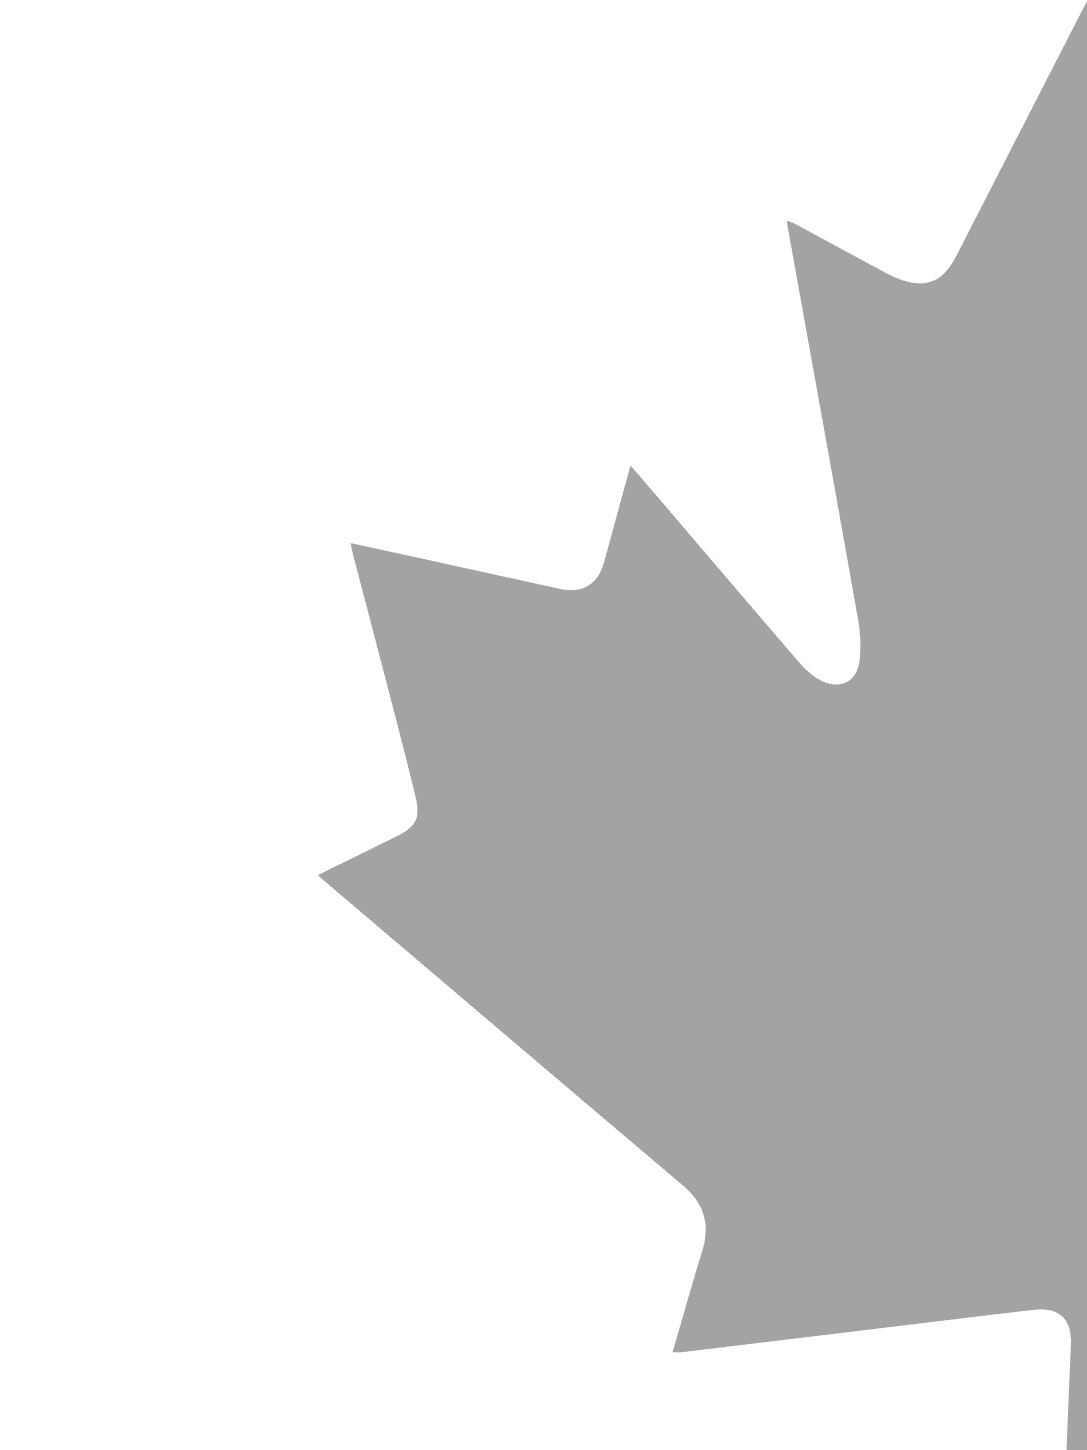 trc-MAPLE-LEAF-bg-grey.jpg